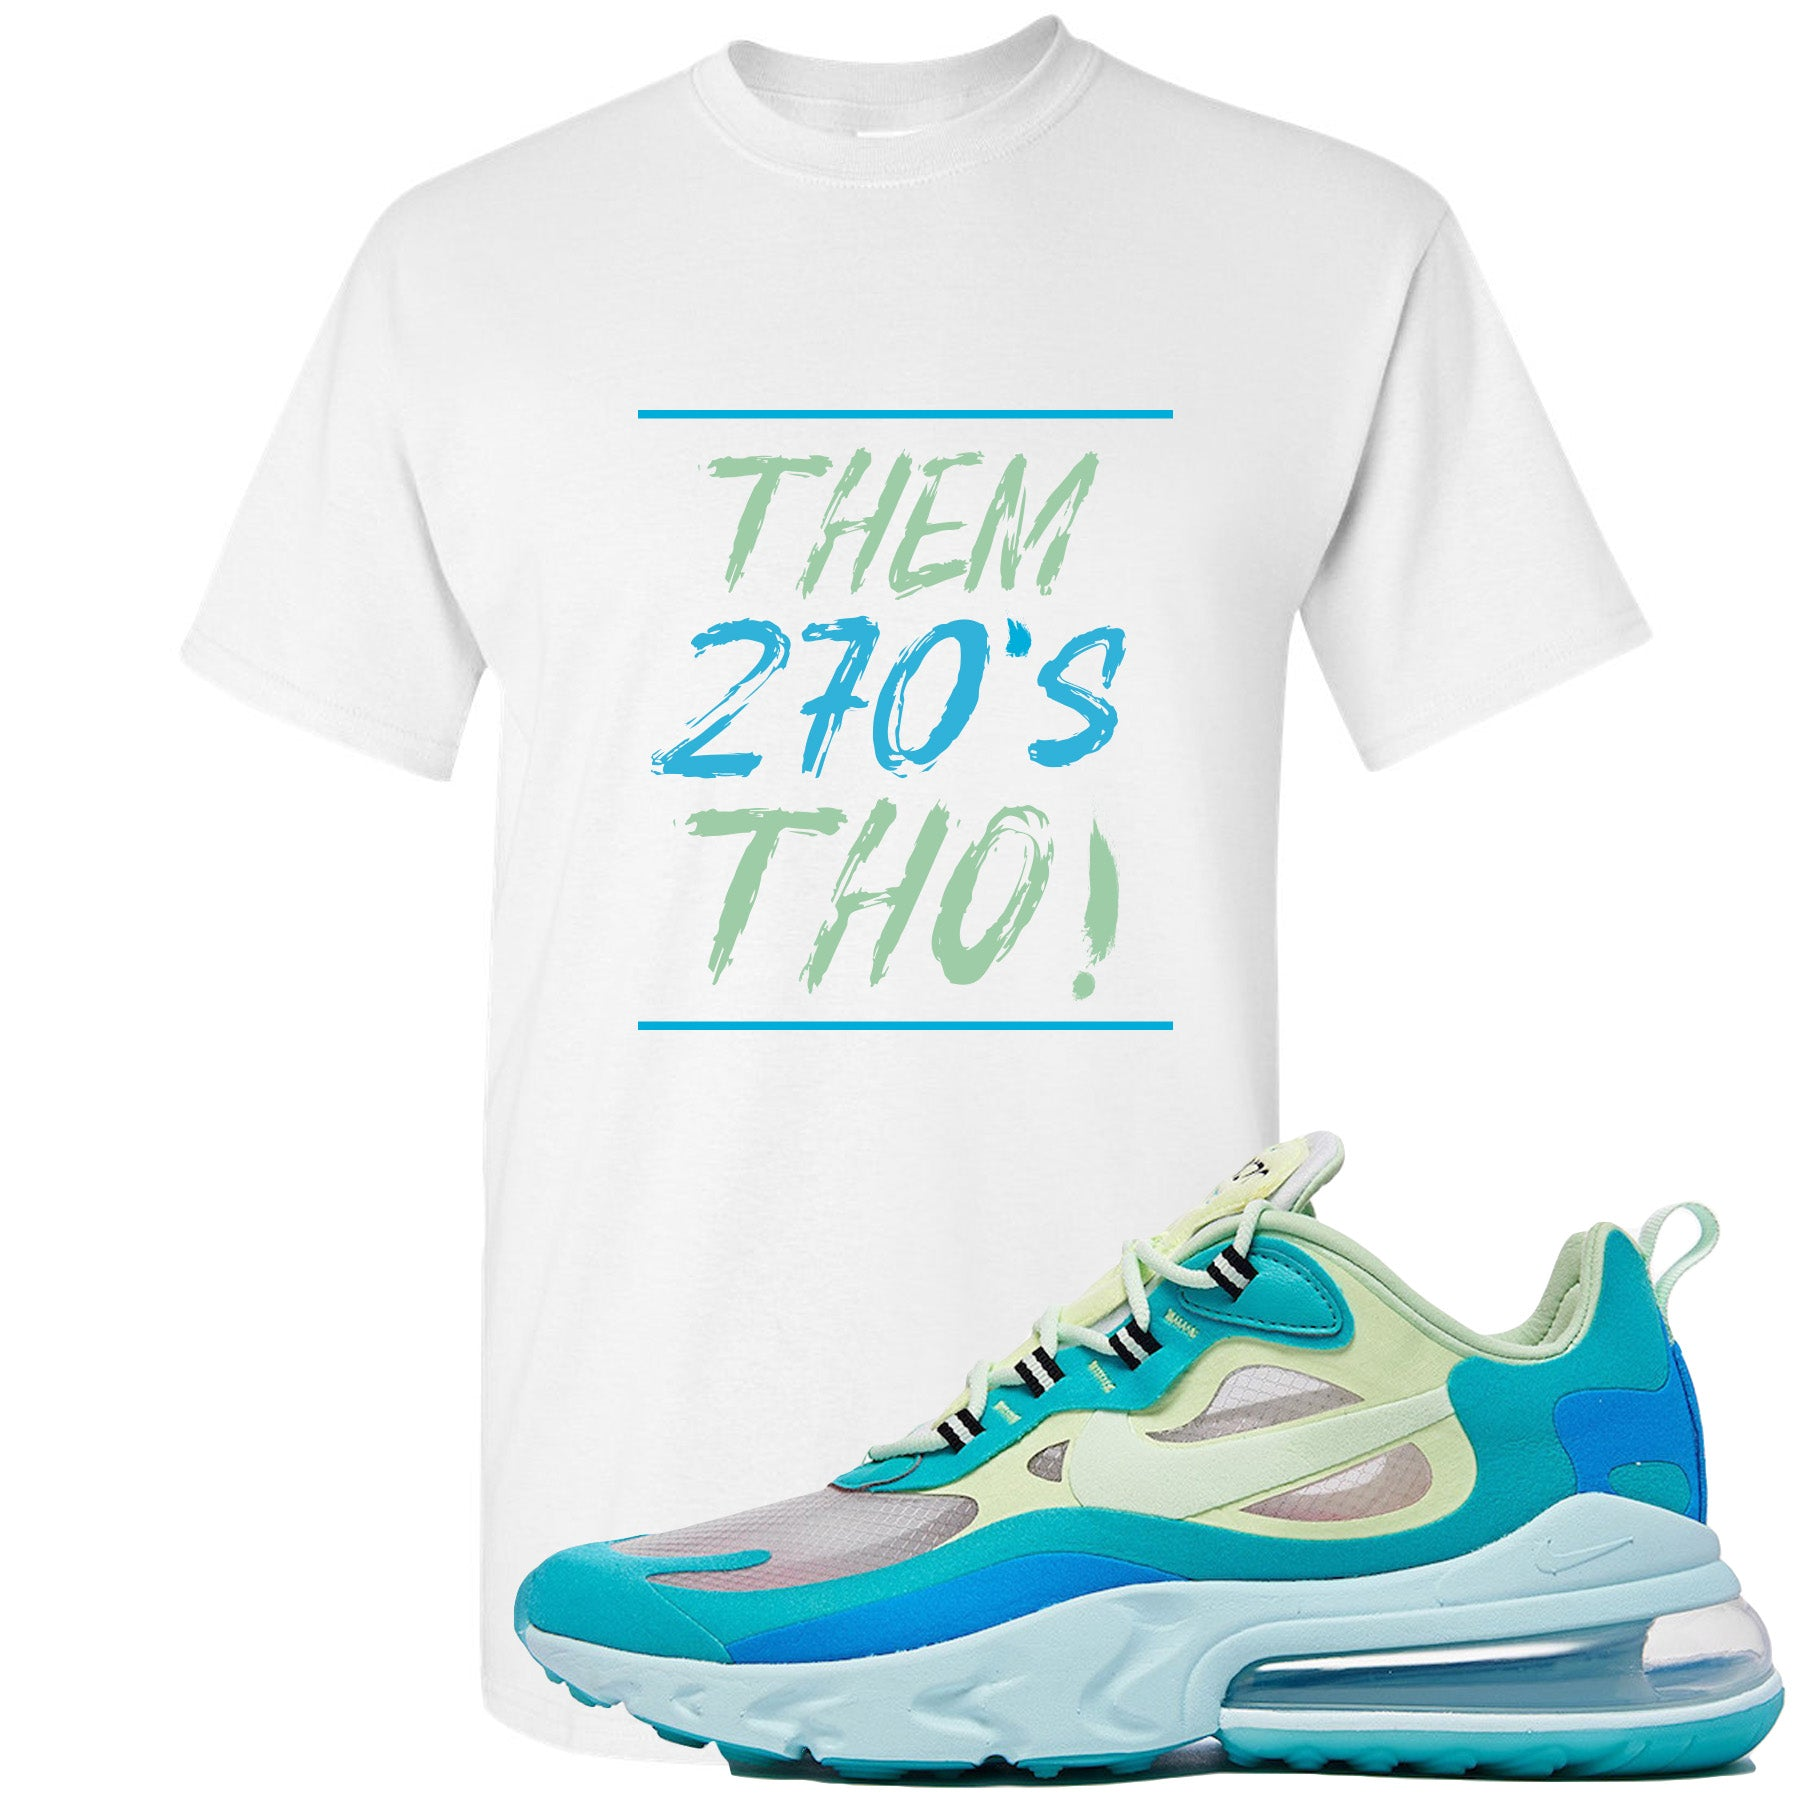 best sneakers 533a5 bbba3 Nike Air Max 270 React Hyper Jade Sneaker Match Them 270s Tho White T-Shirt